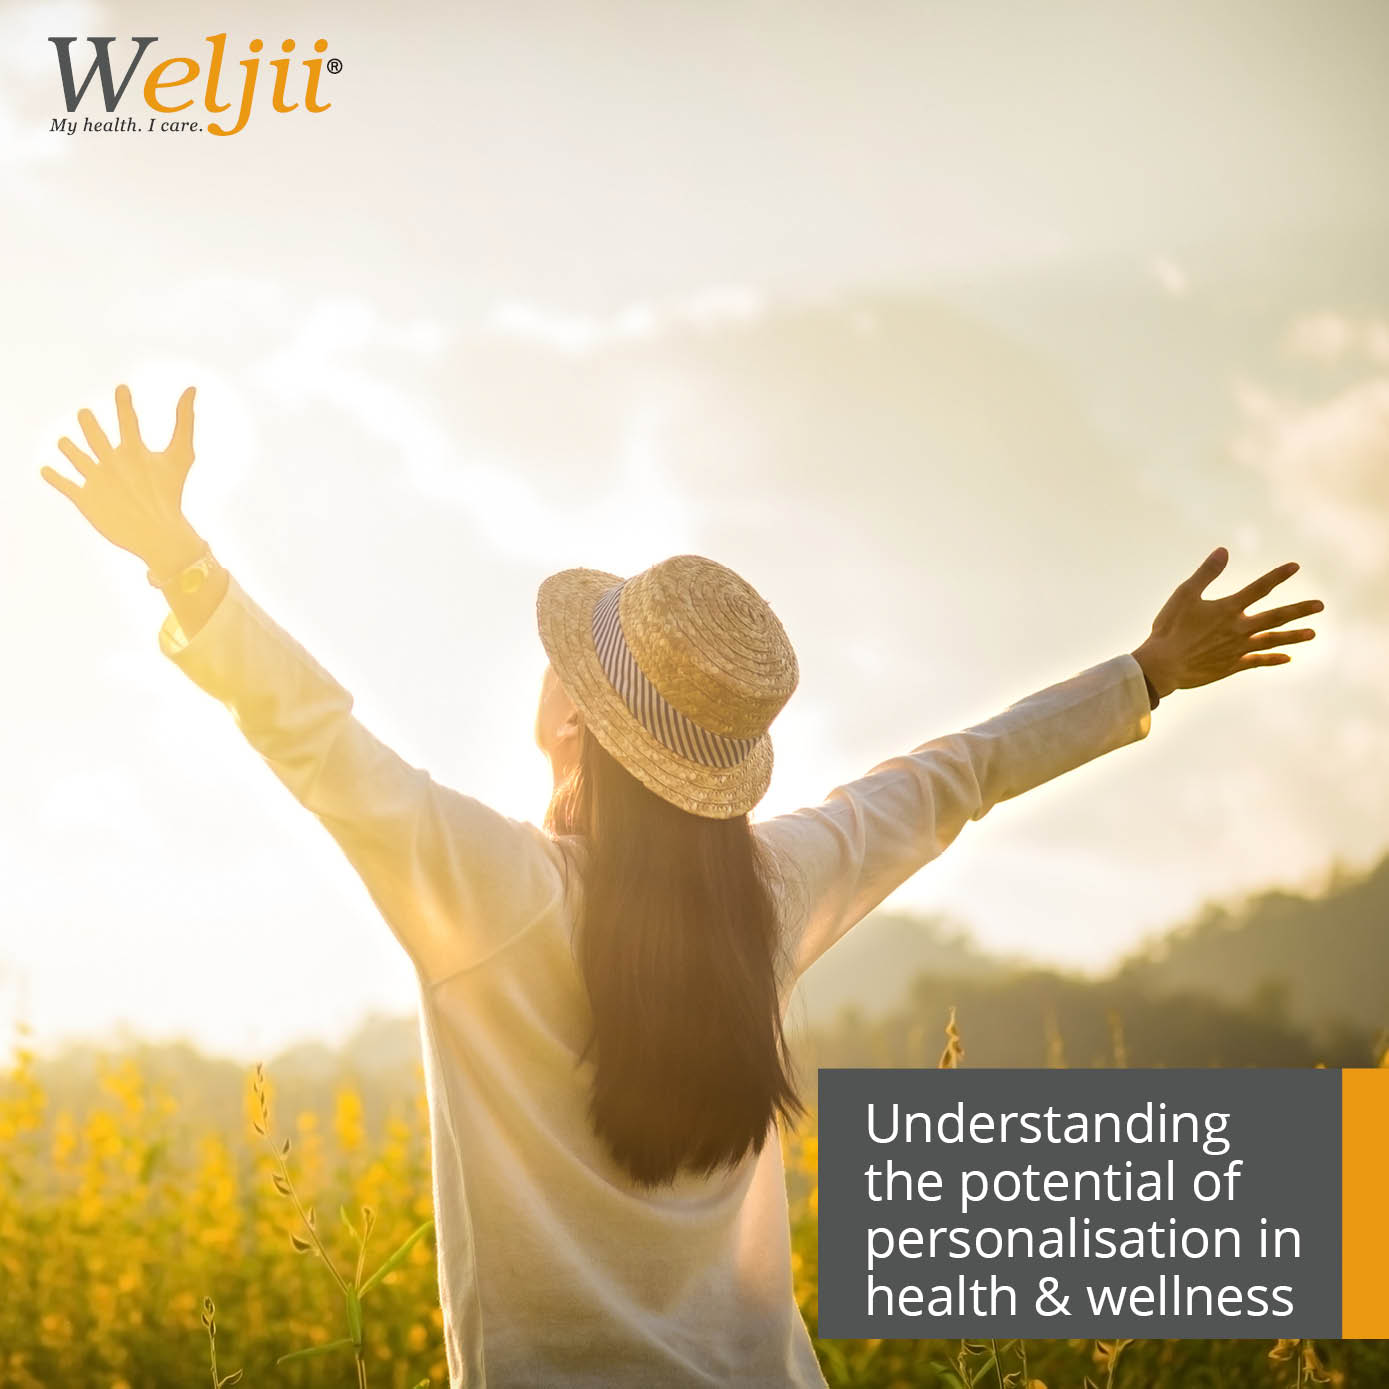 Understanding the potential of personalisation in health and wellness